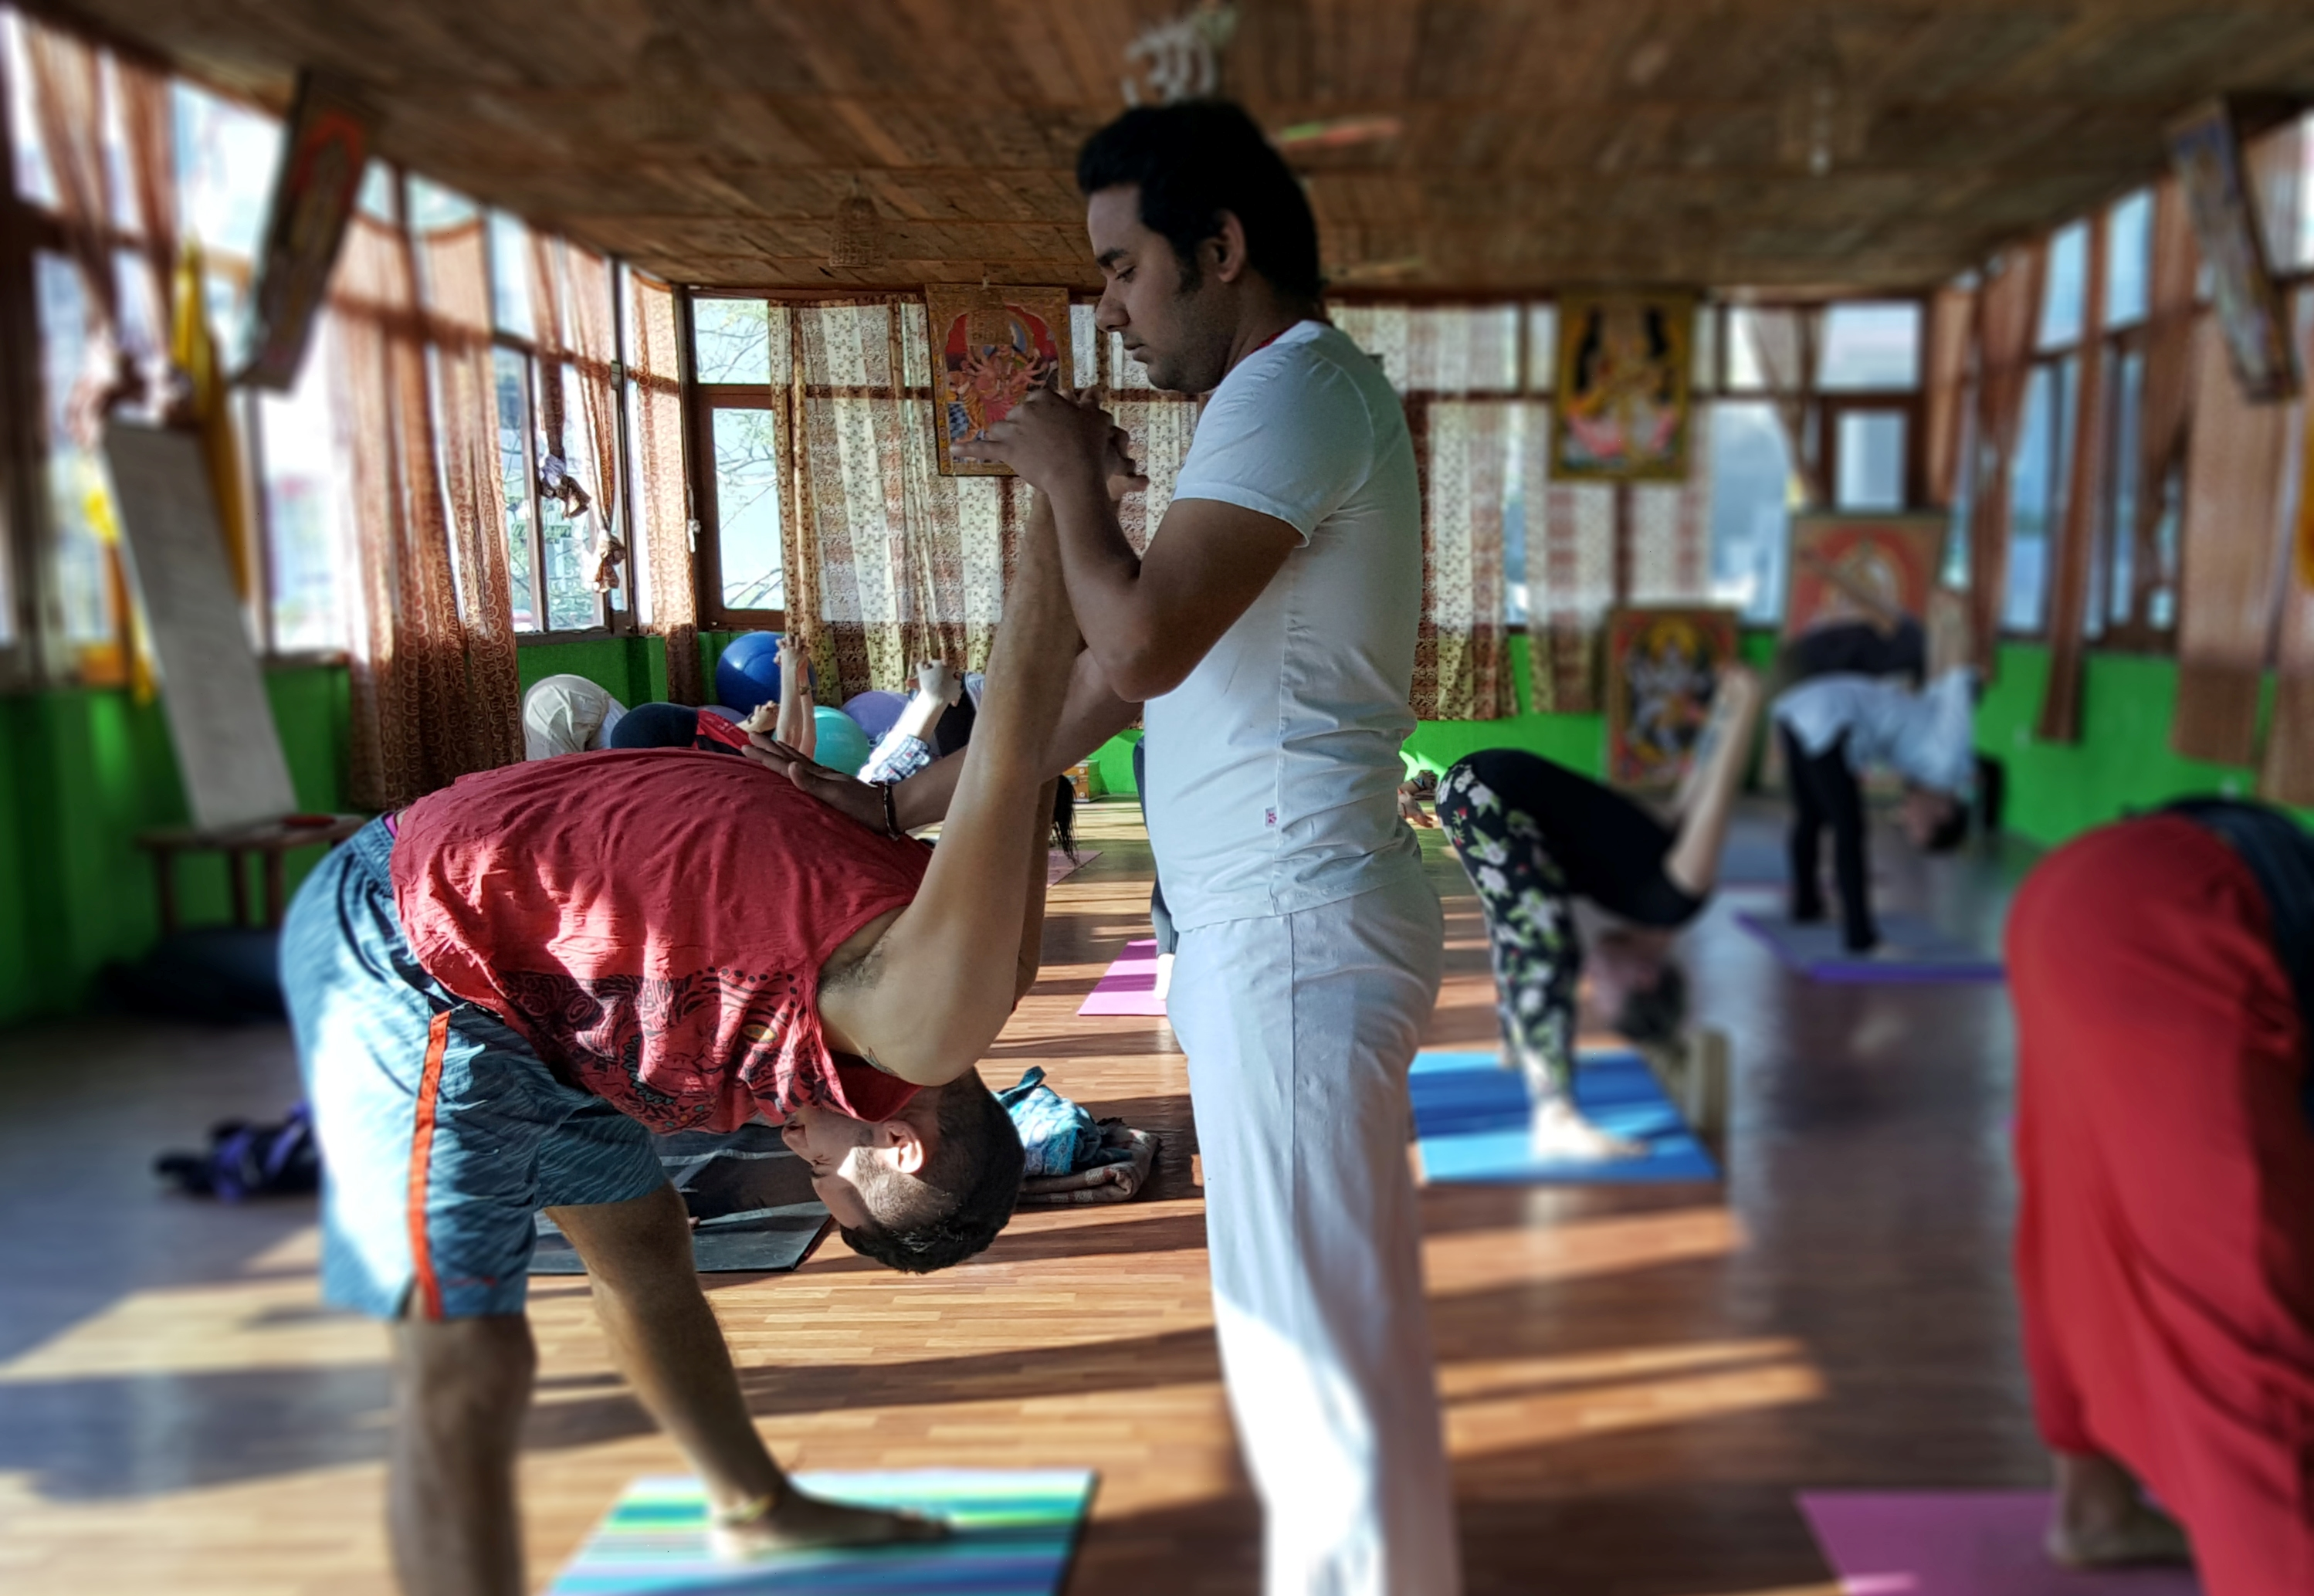 200 Hour Yoga Teacher Training - May 2019